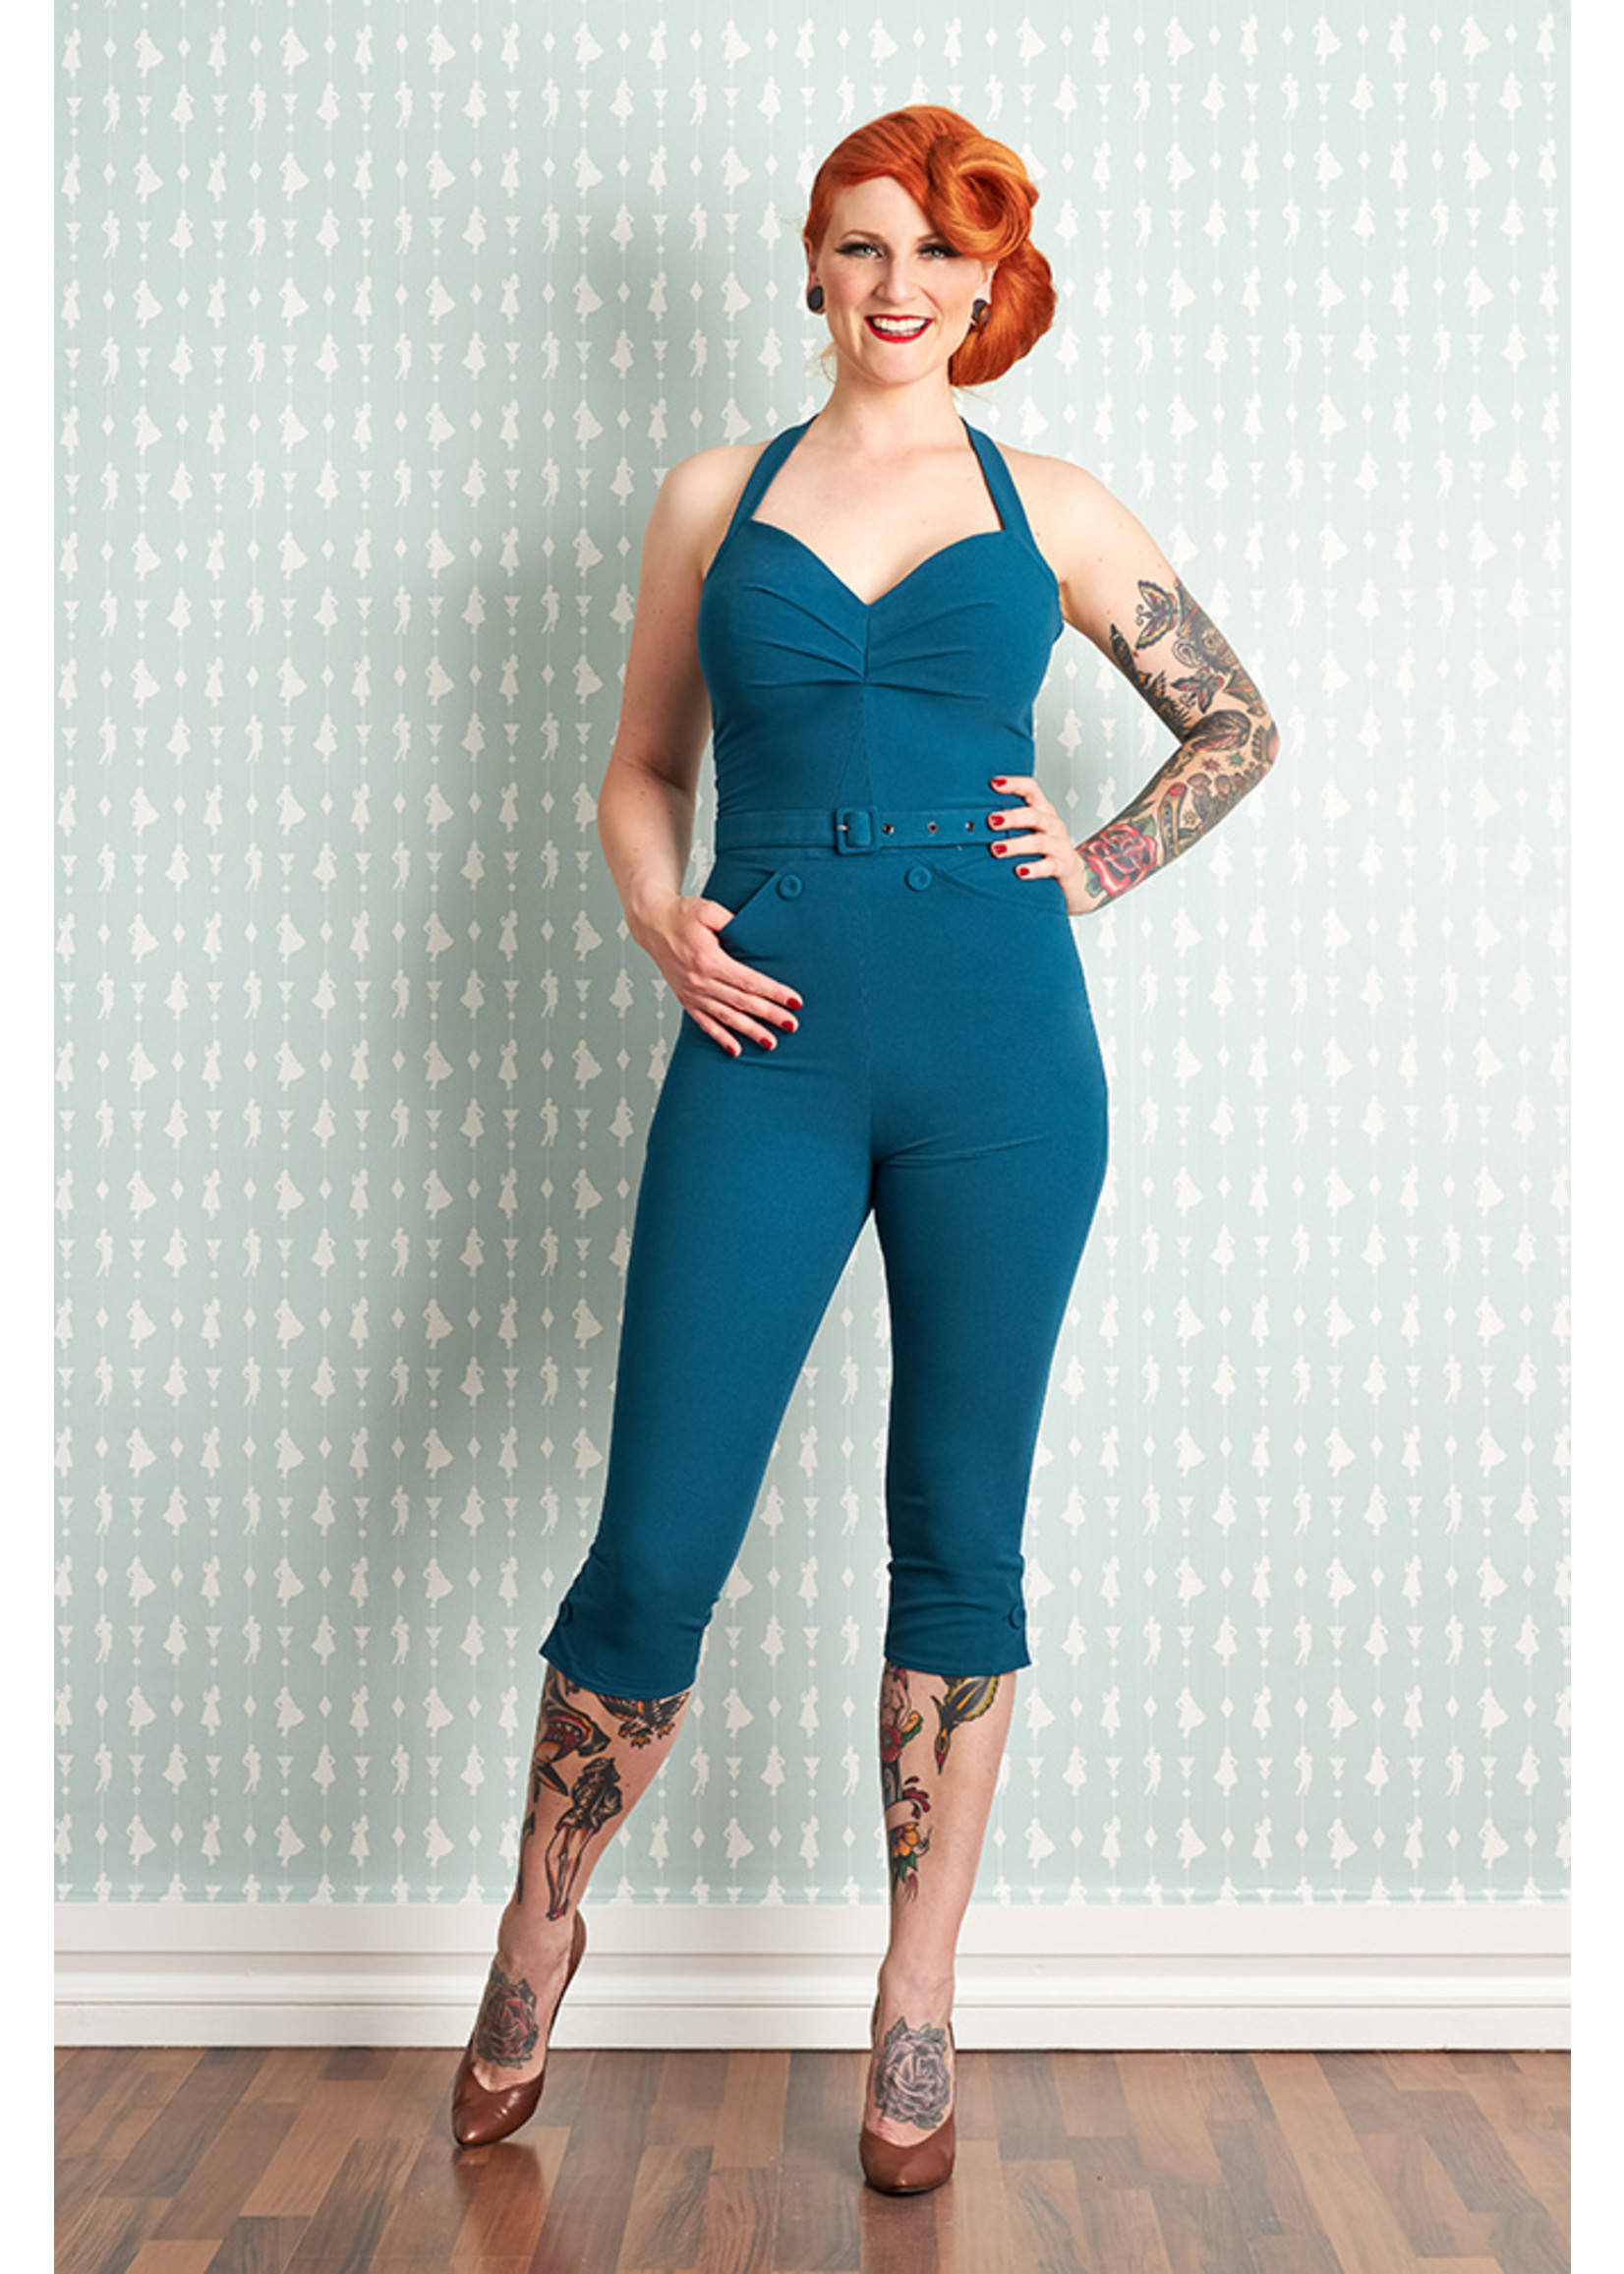 Miss-Candyfloss Miss Candyfloss Mitsy-Kat Halterneck Playsuit in Petrol